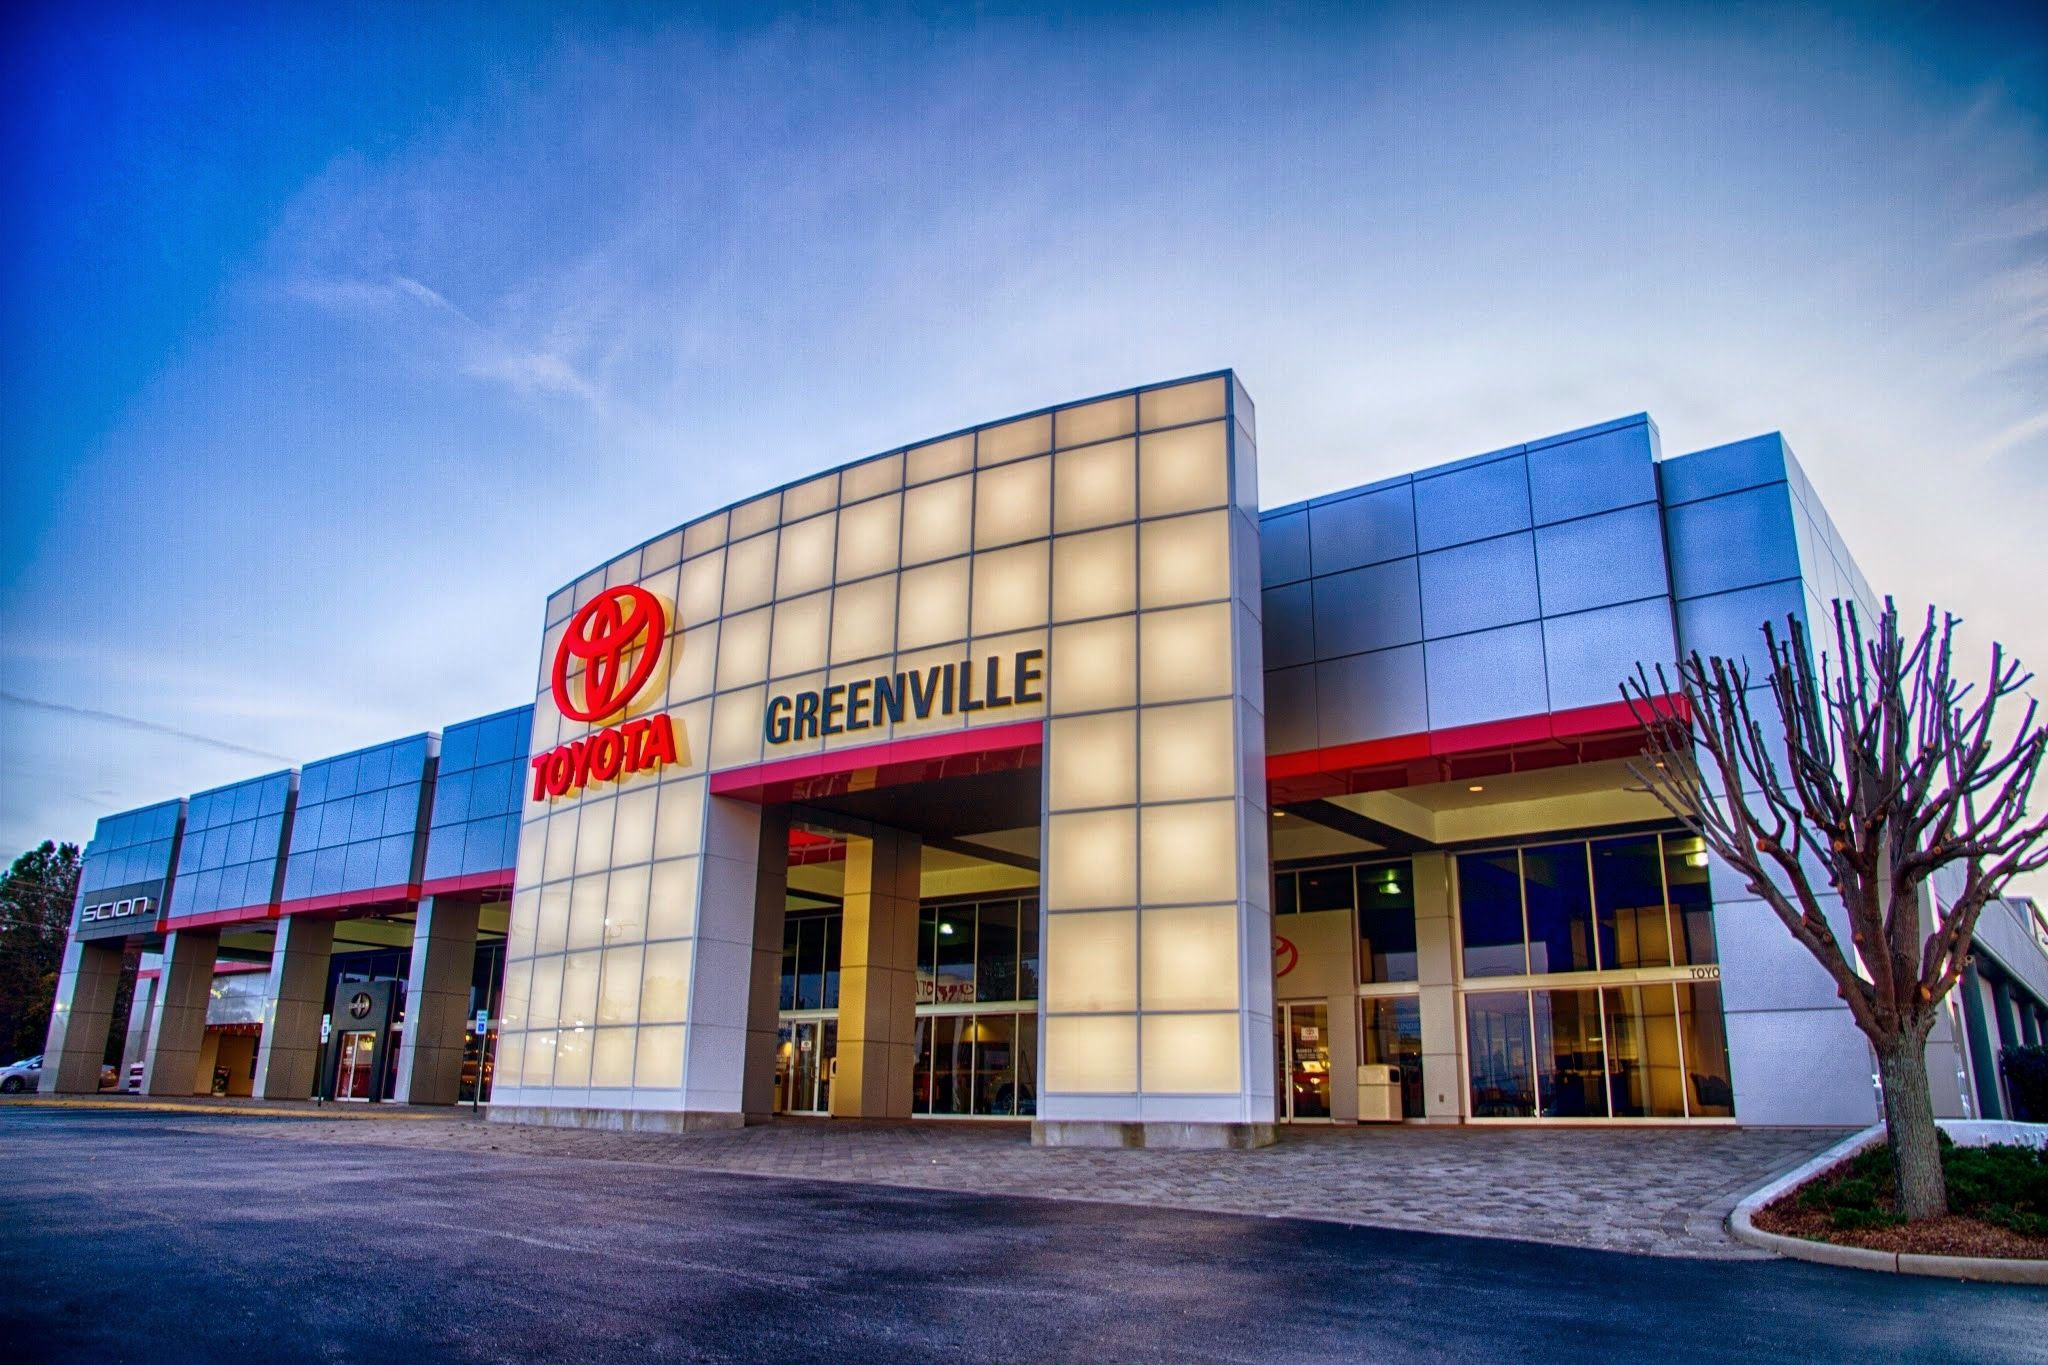 Toyota Of Greenville In Greenville, SC 29607